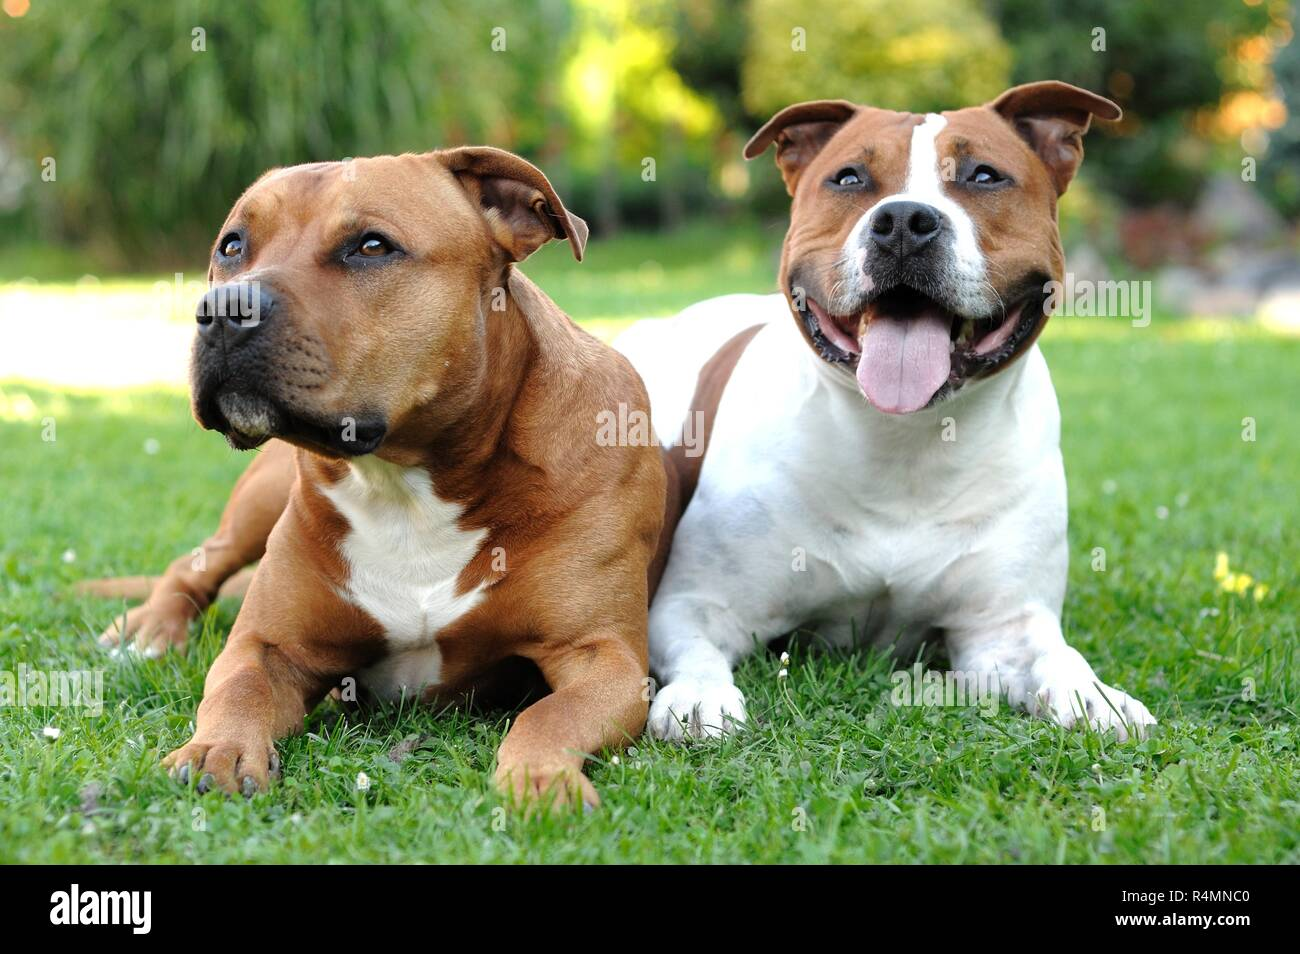 American Staffordshire terriers - Stock Image